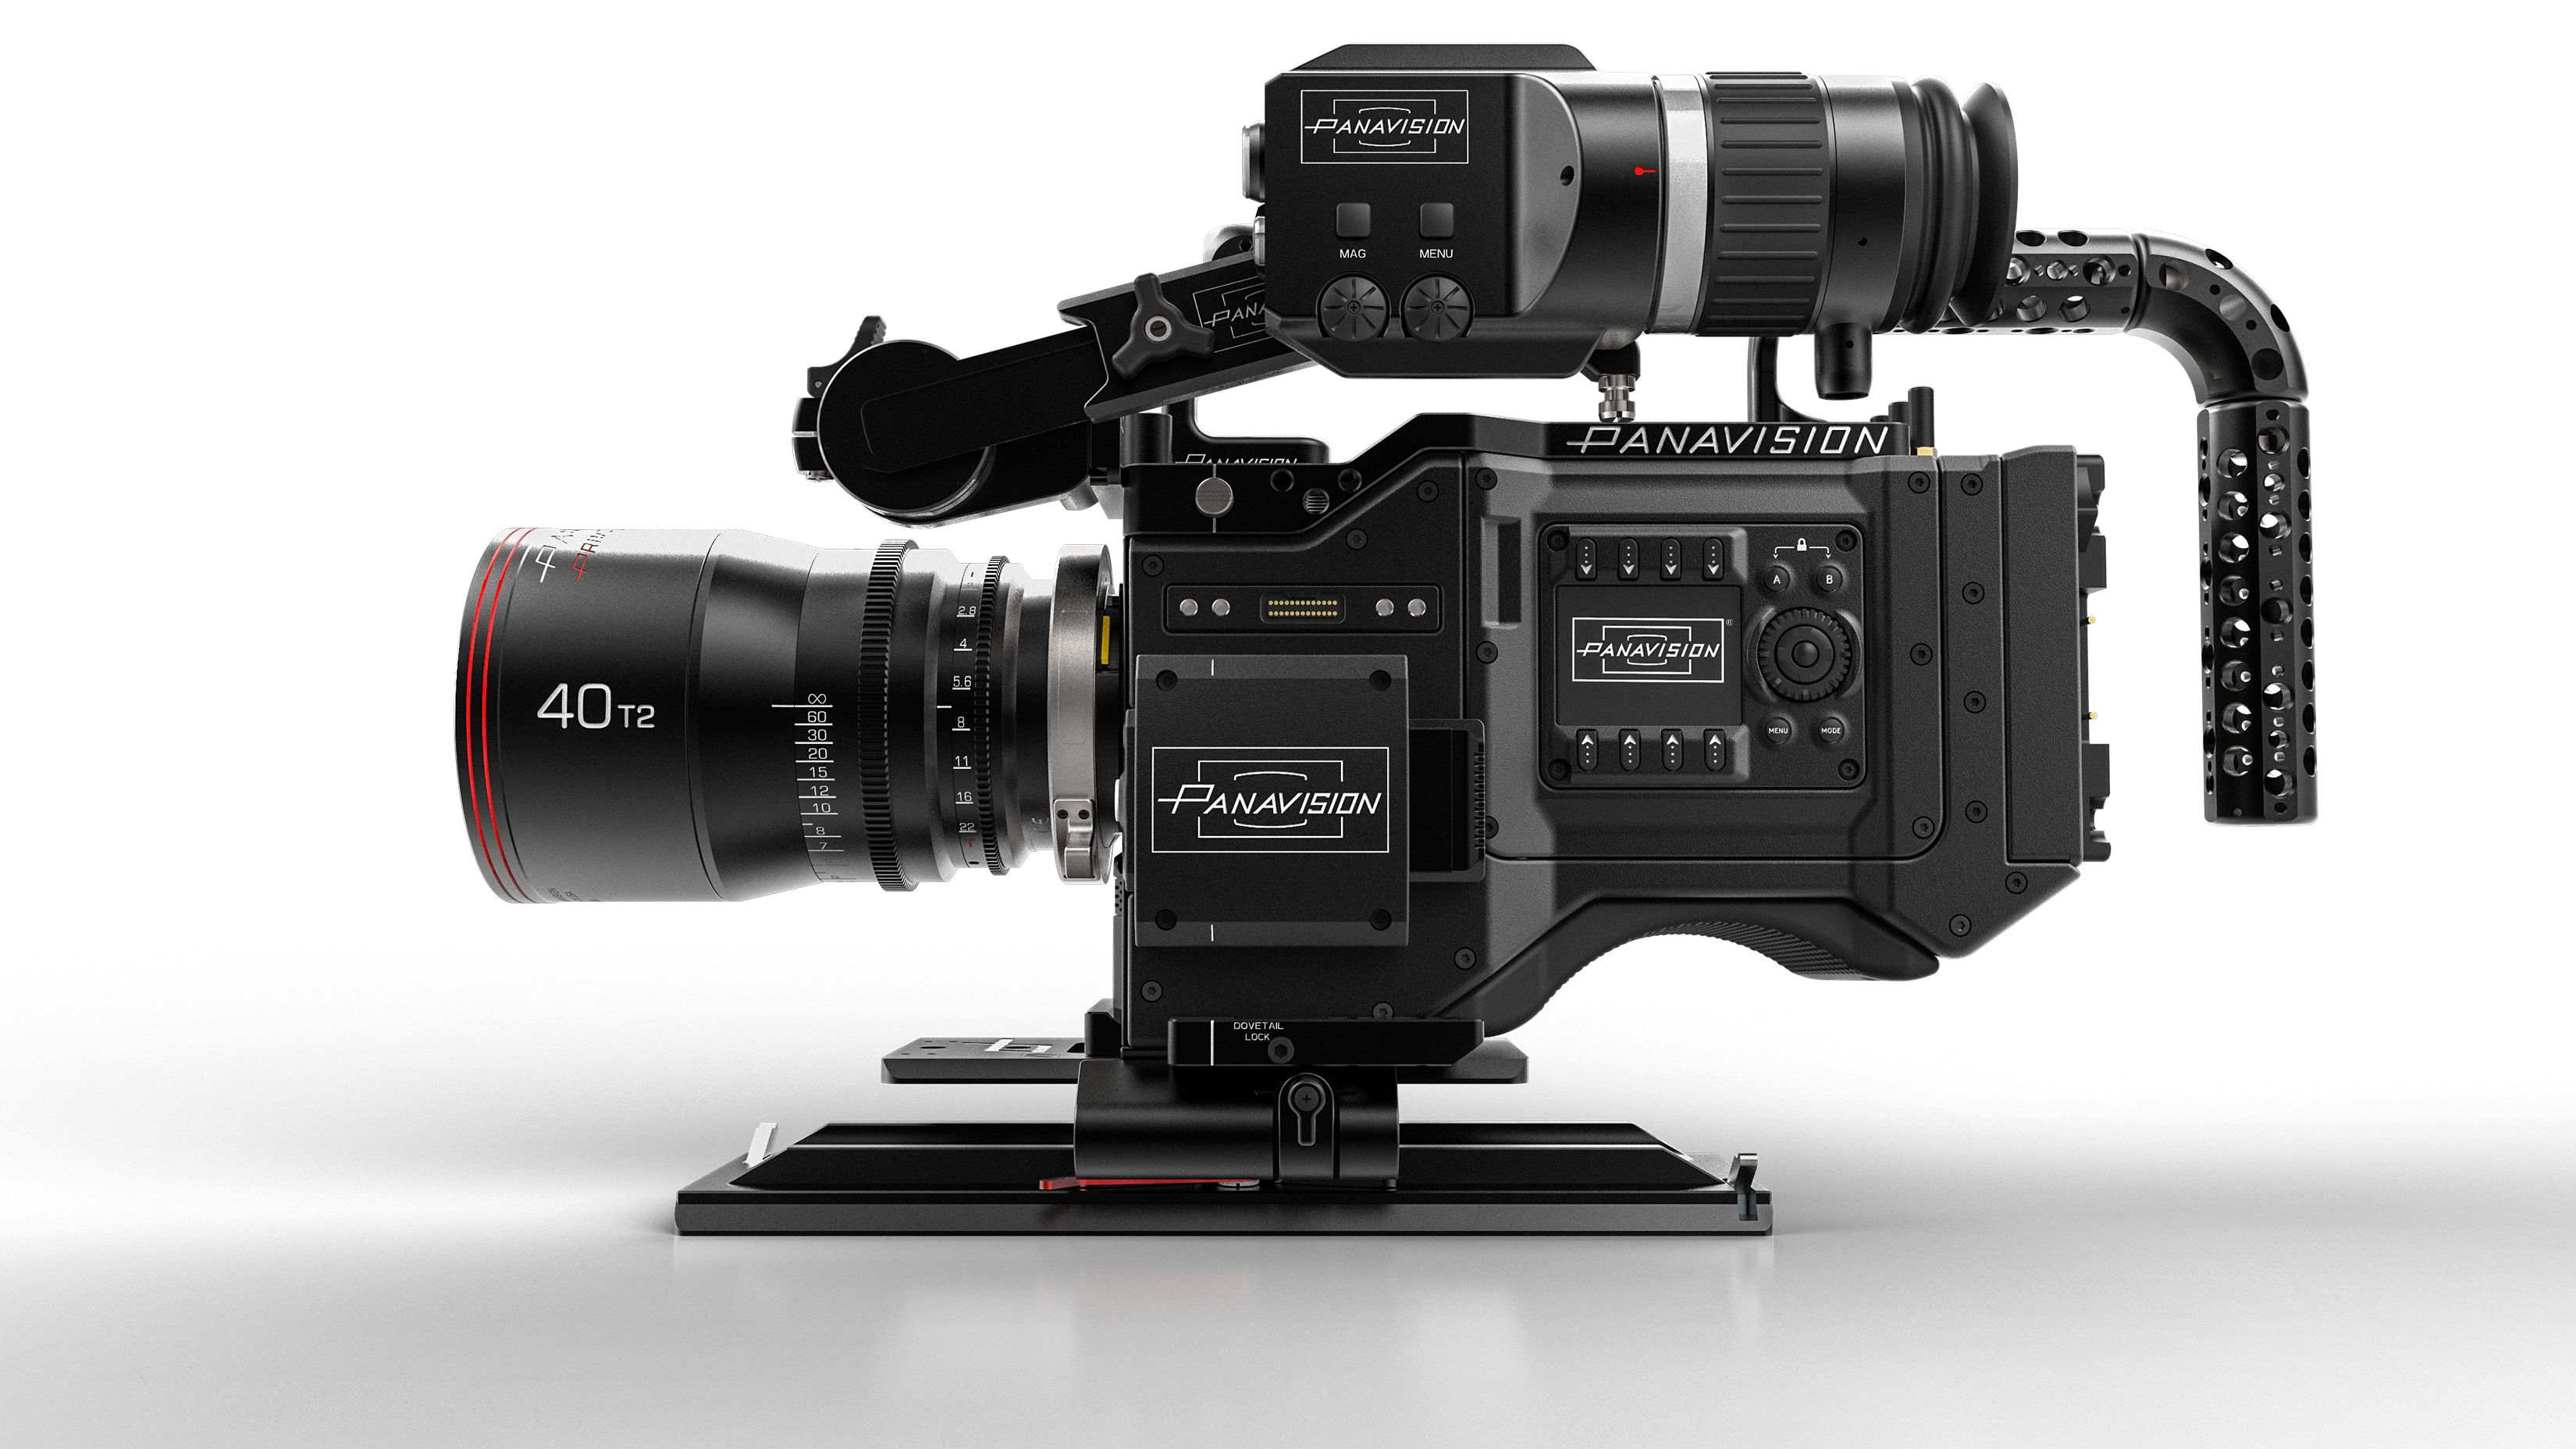 The Panavision Millennium DXL: Light Iron and RED create a winning new look for large format cinematography 6